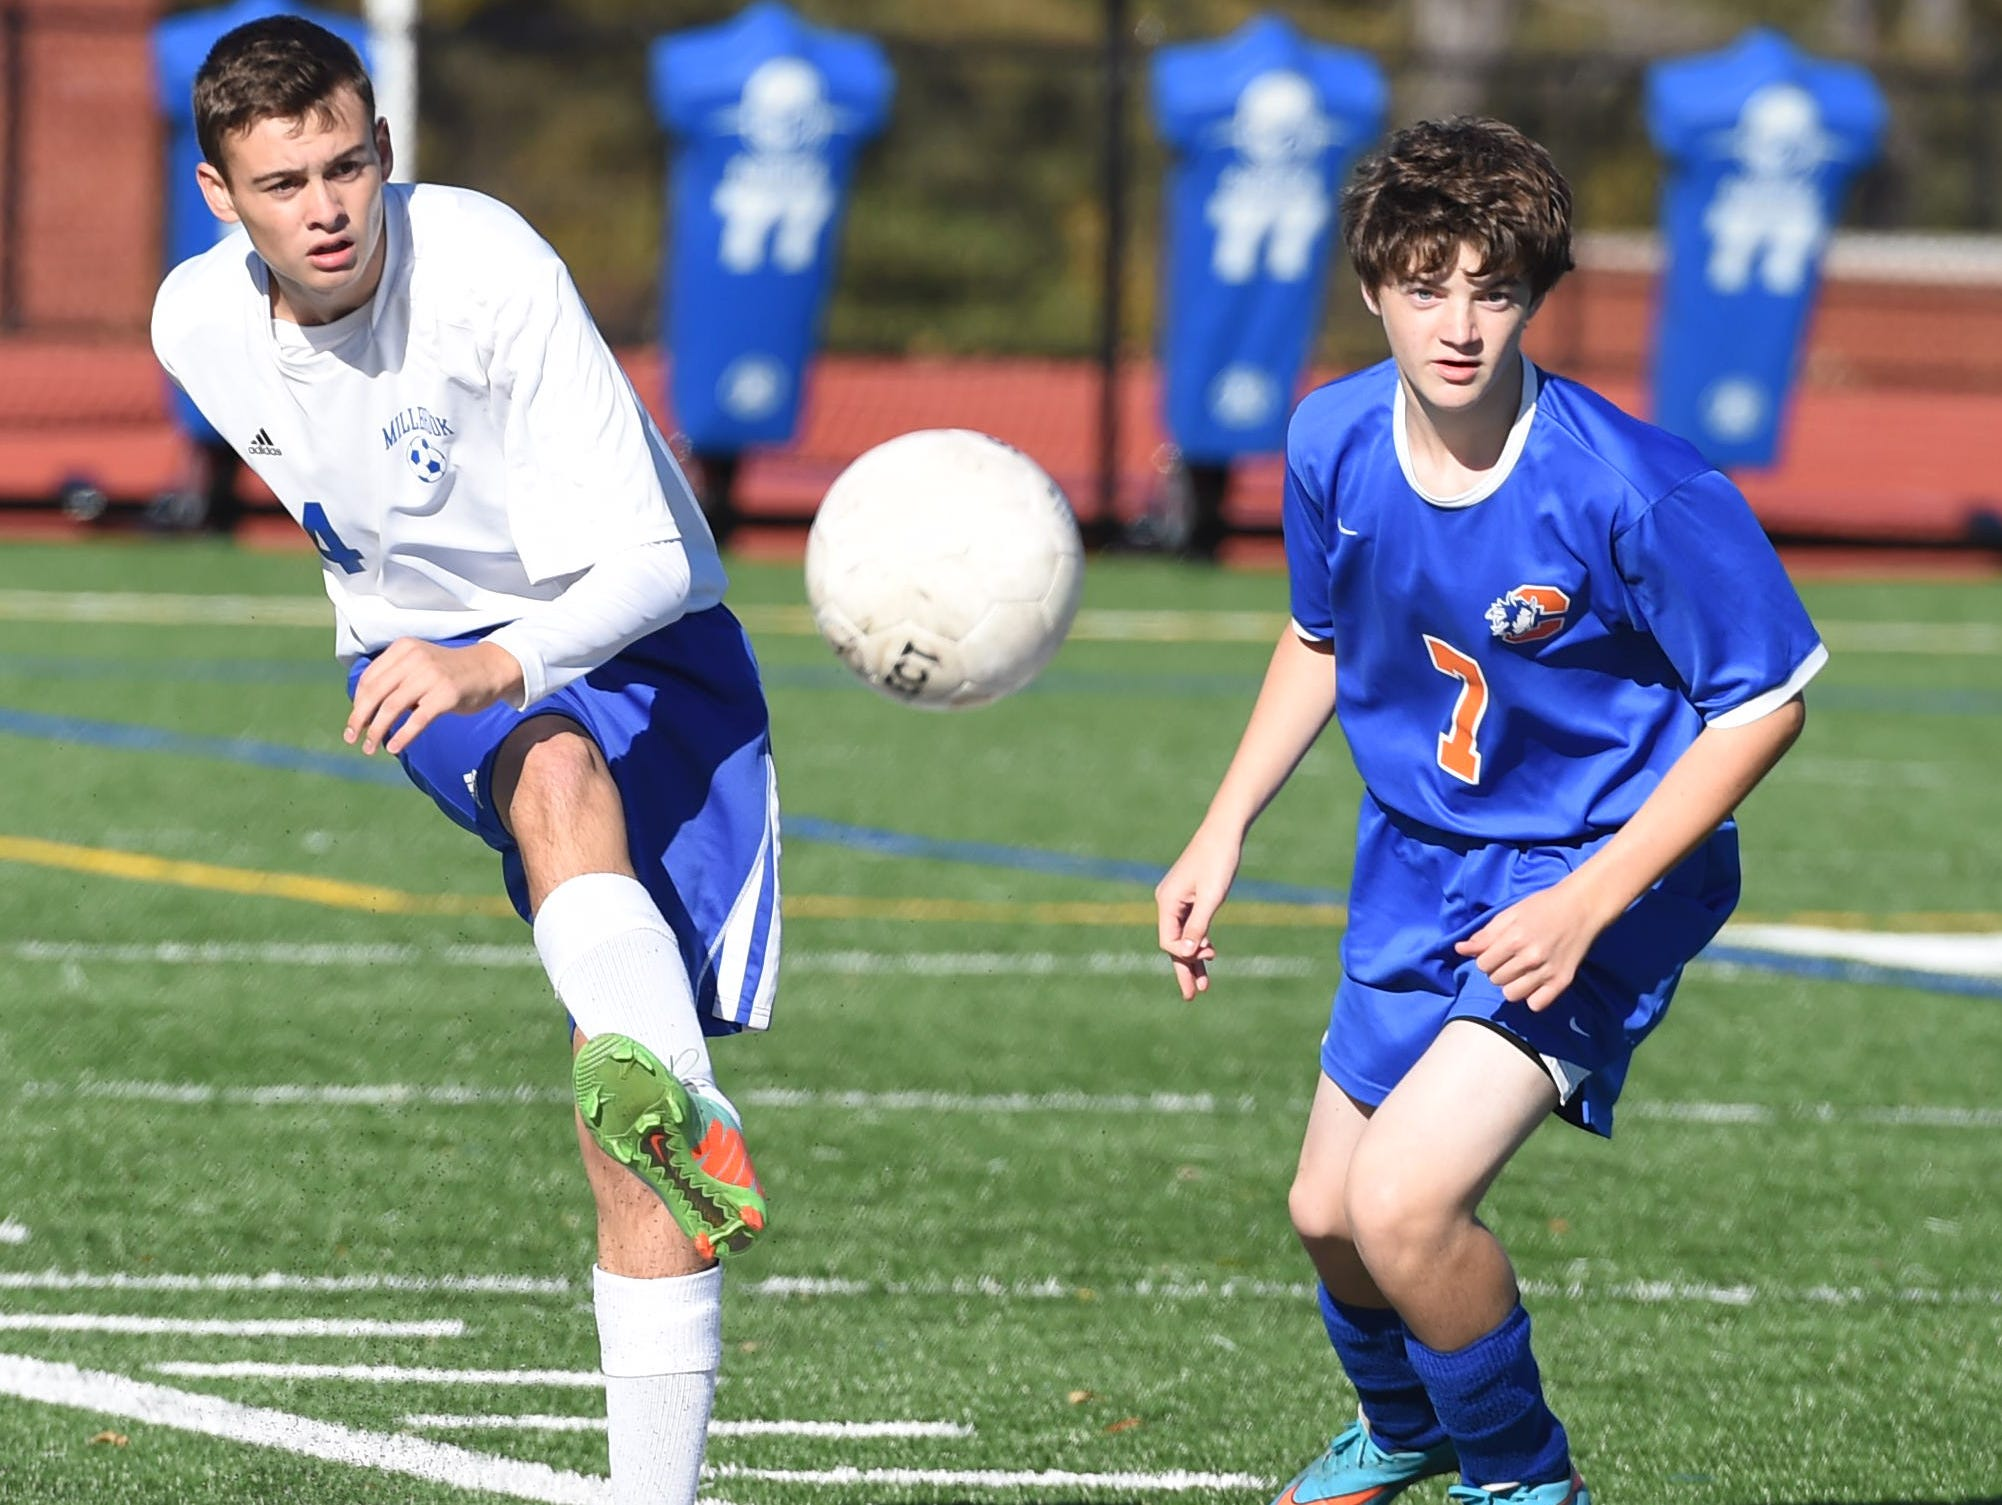 Action from the Section 9 Class C semifinal between Chester and Millbrook on Monday.